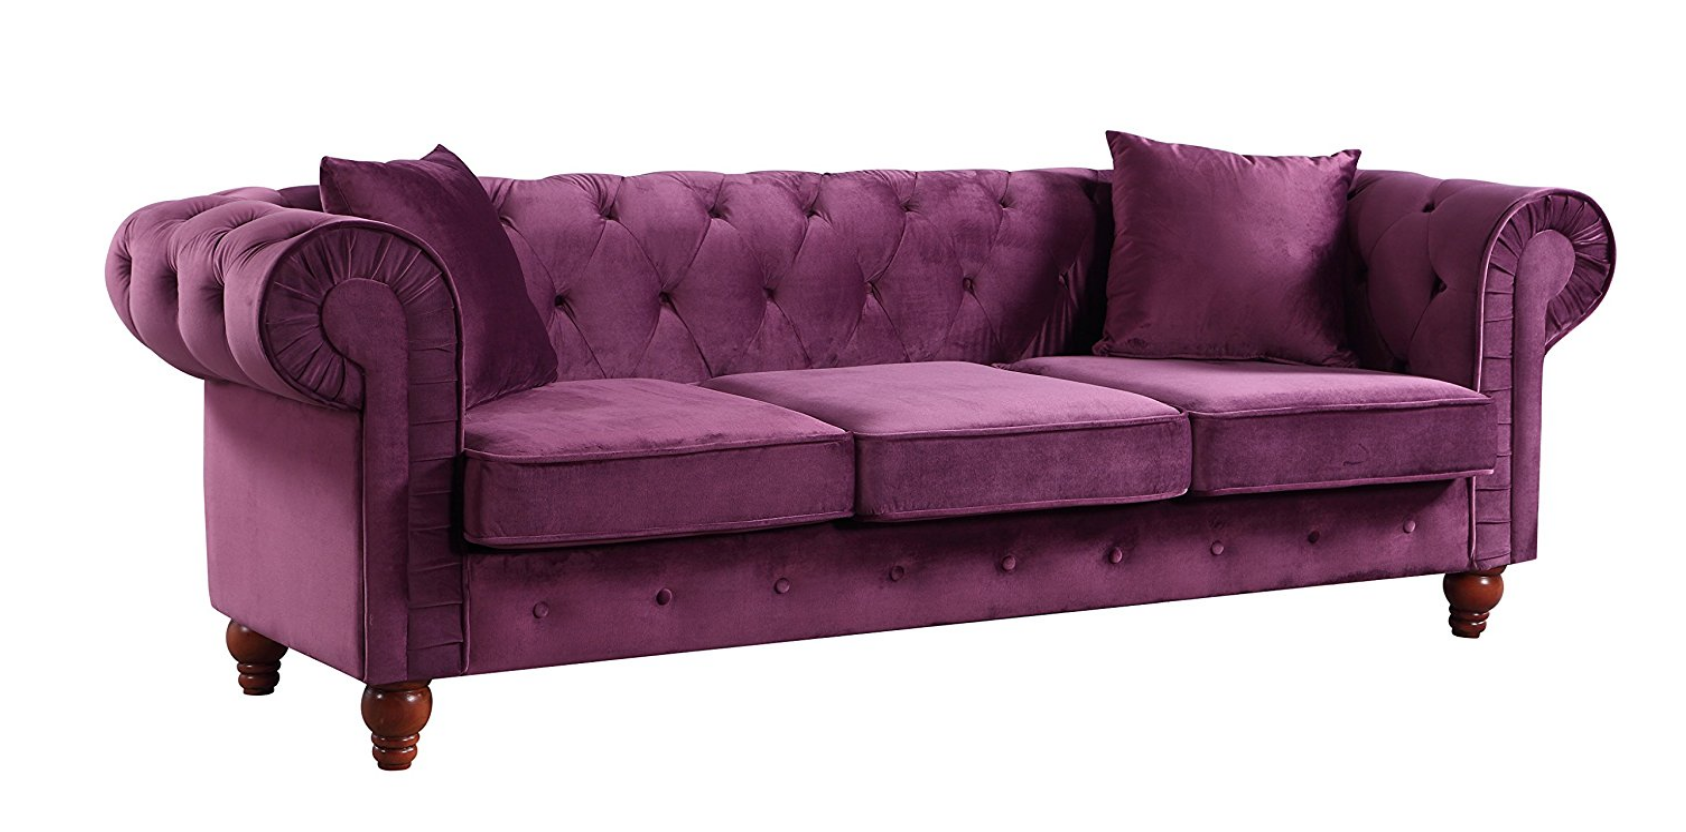 Purple Velvet arm tufted button style sofa.png